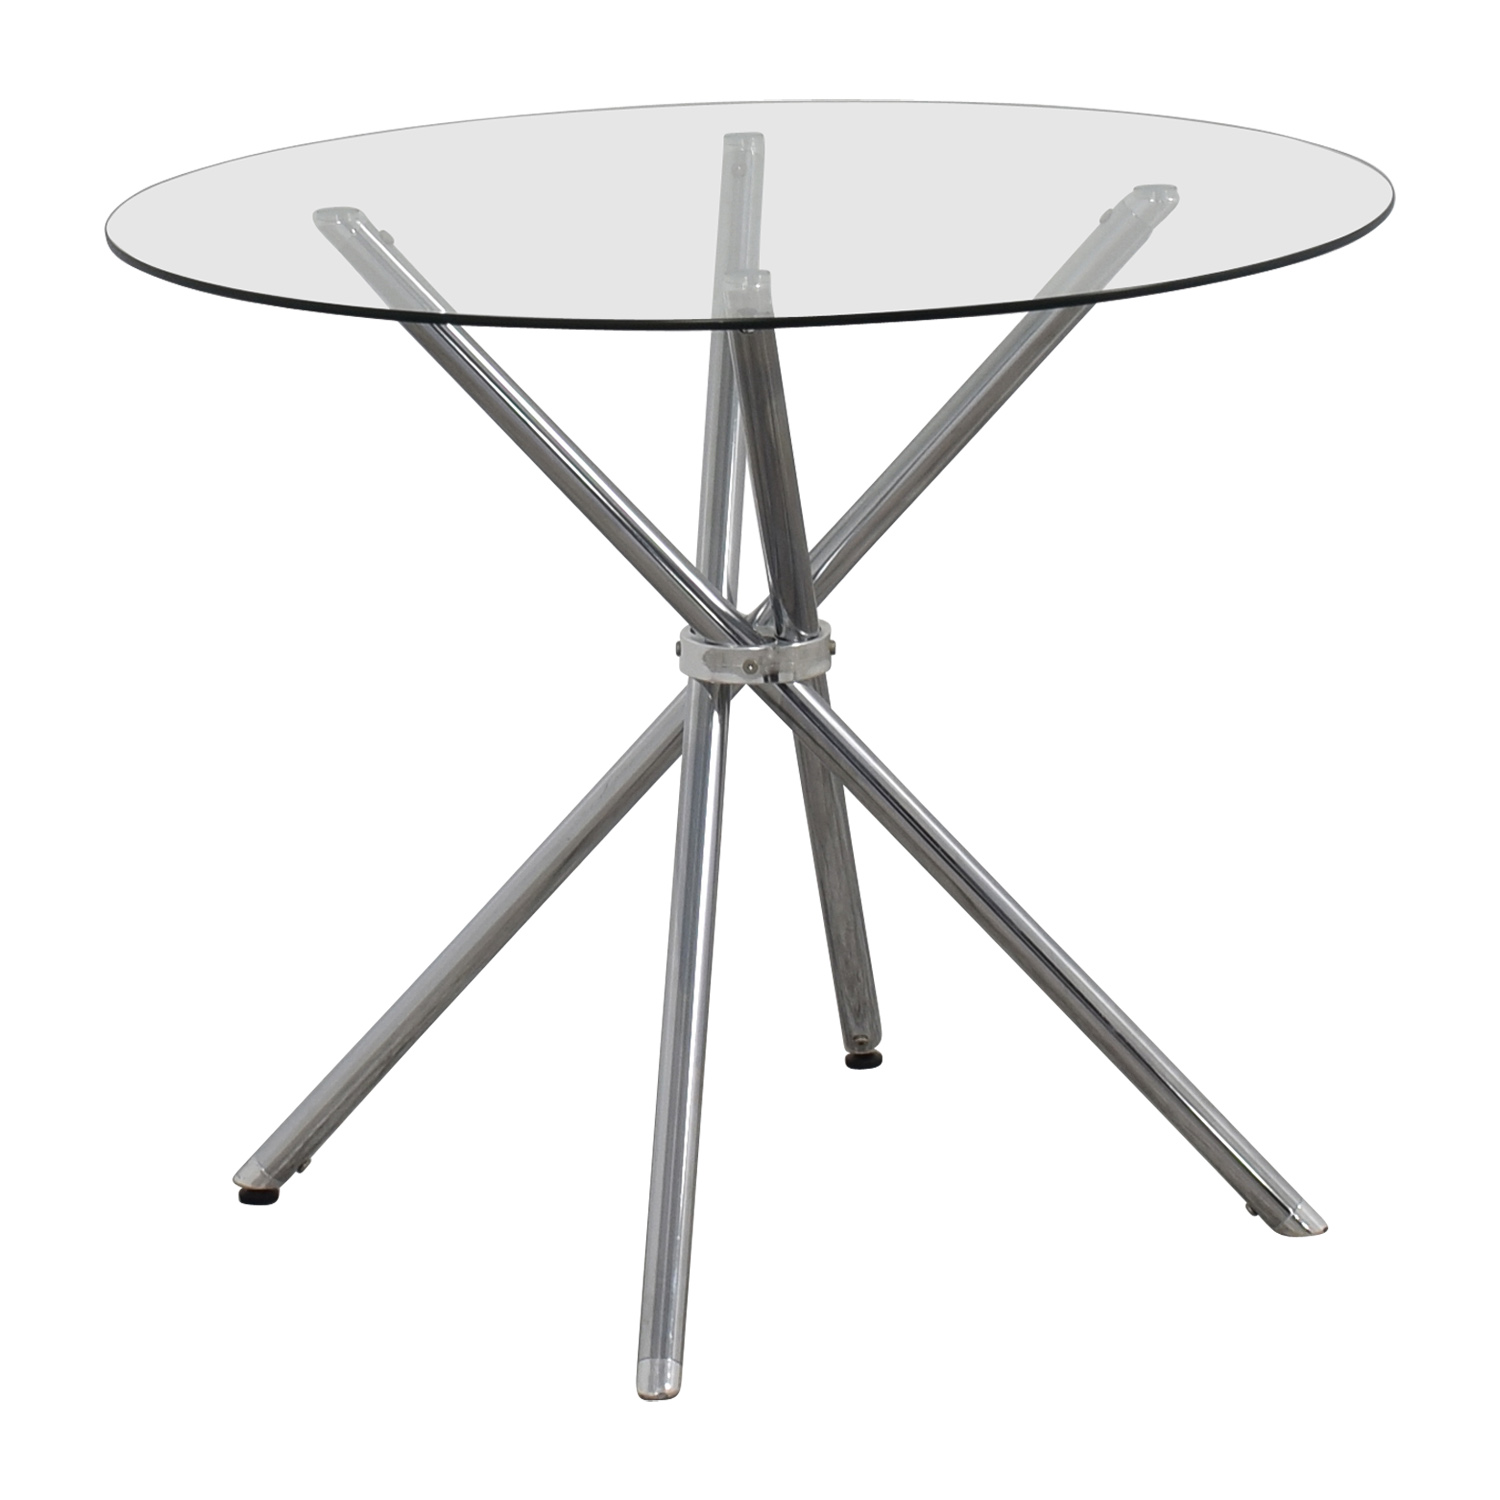 90 off round glass and chrome dining table tables. Black Bedroom Furniture Sets. Home Design Ideas